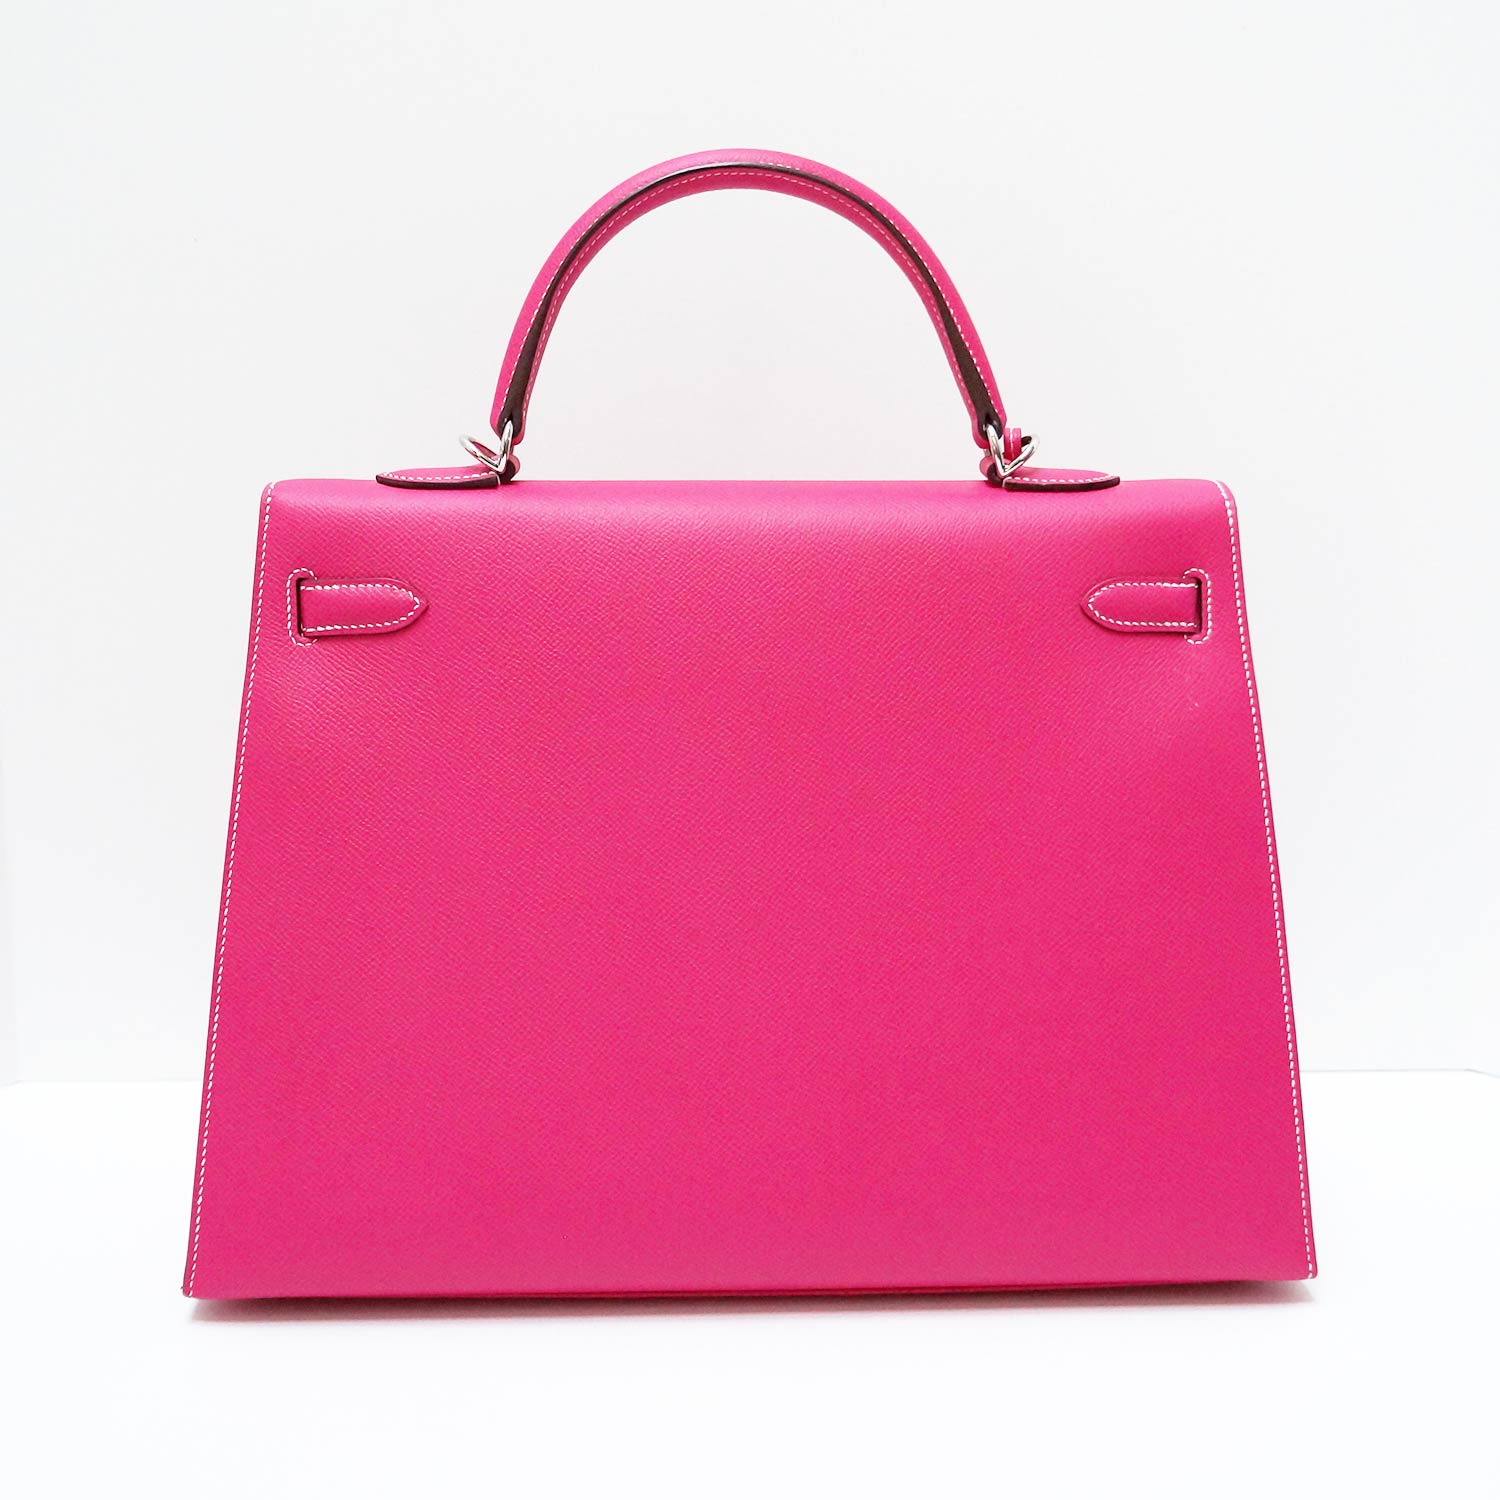 63f688564373a Details about HERMES Kelly 35 Sellier Rose Tyrien Pink Epsom Leather  Palladium Hardware Bag